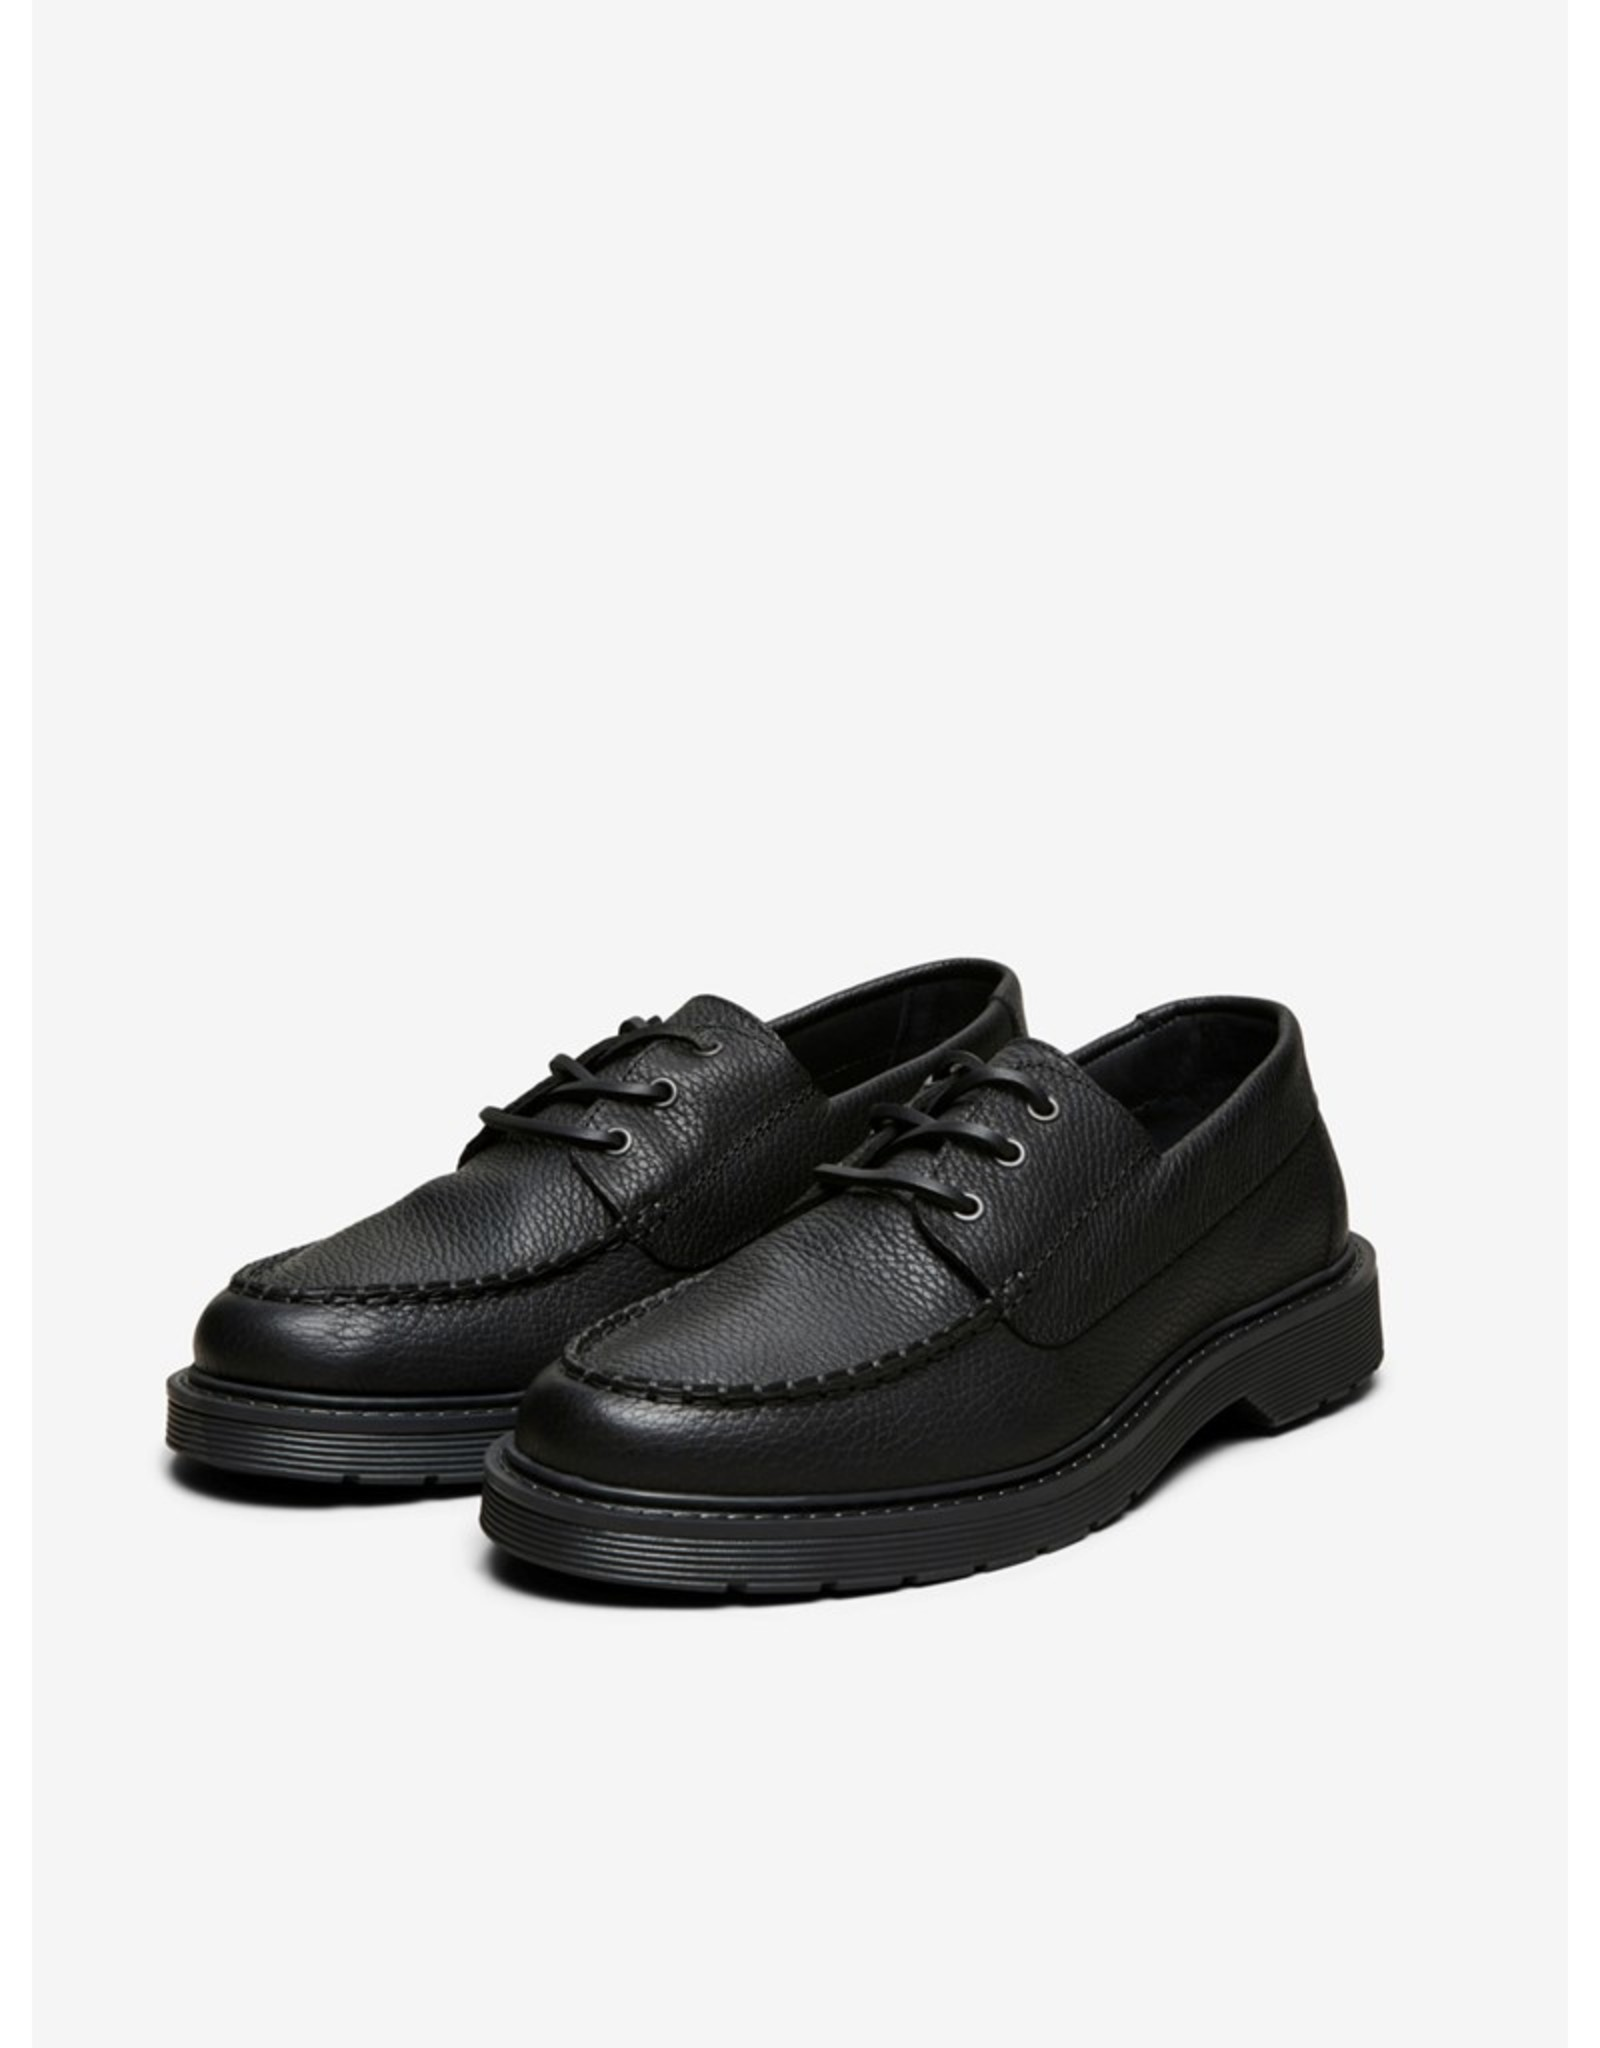 Selected Homme SS21-1-SE-Tim Leather Boat Shoe 78793